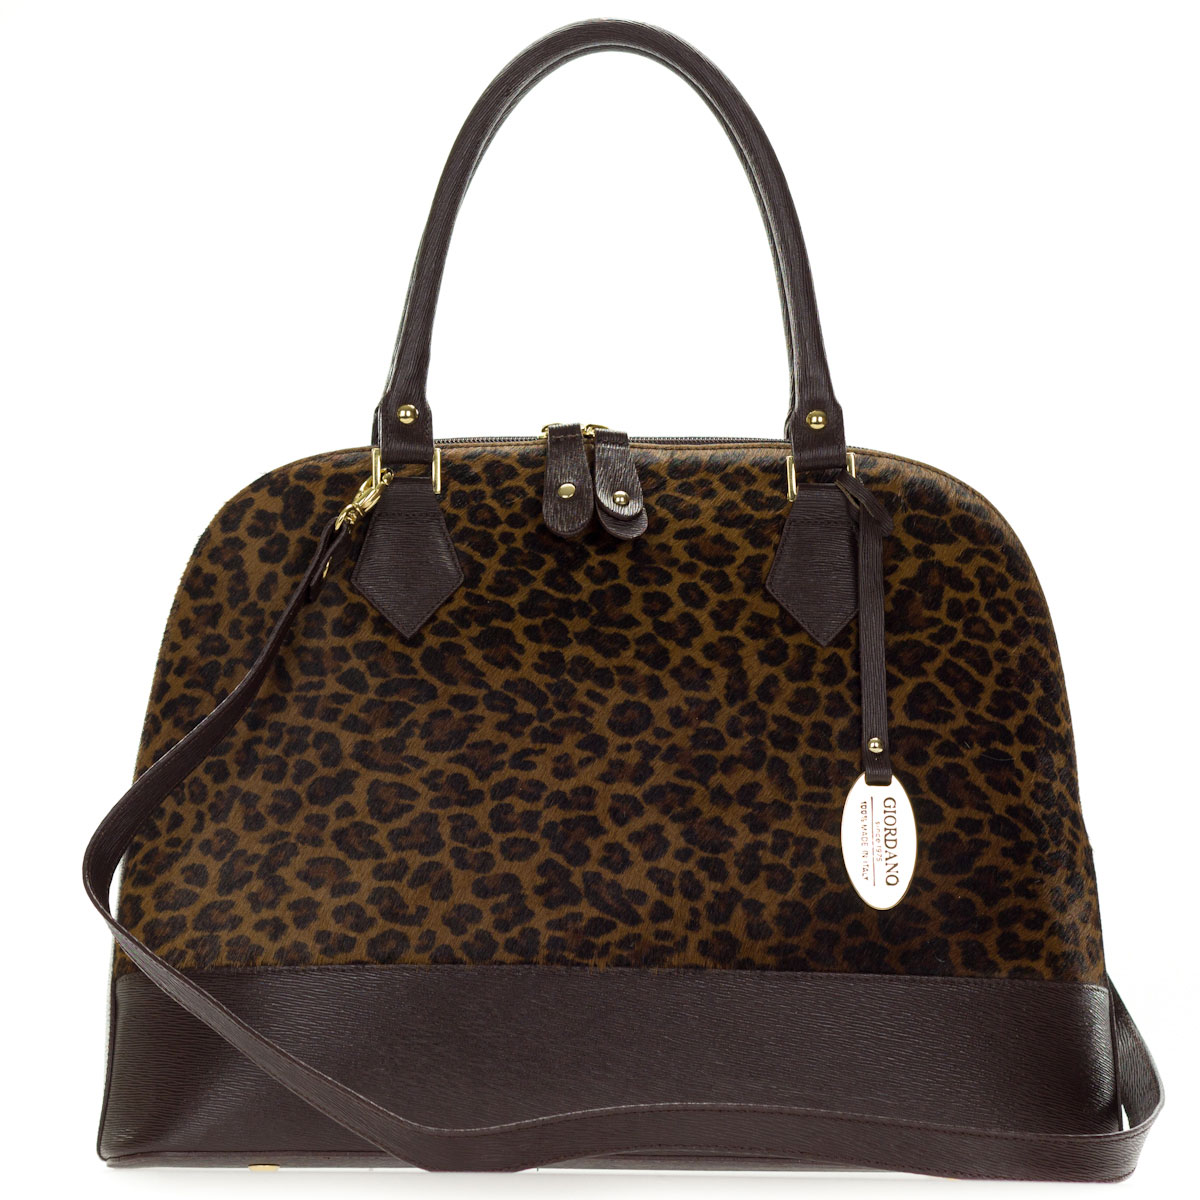 Giordano Italian Made Brown Leather & Leopard Print Cowhide Large Structured Tote Handbag